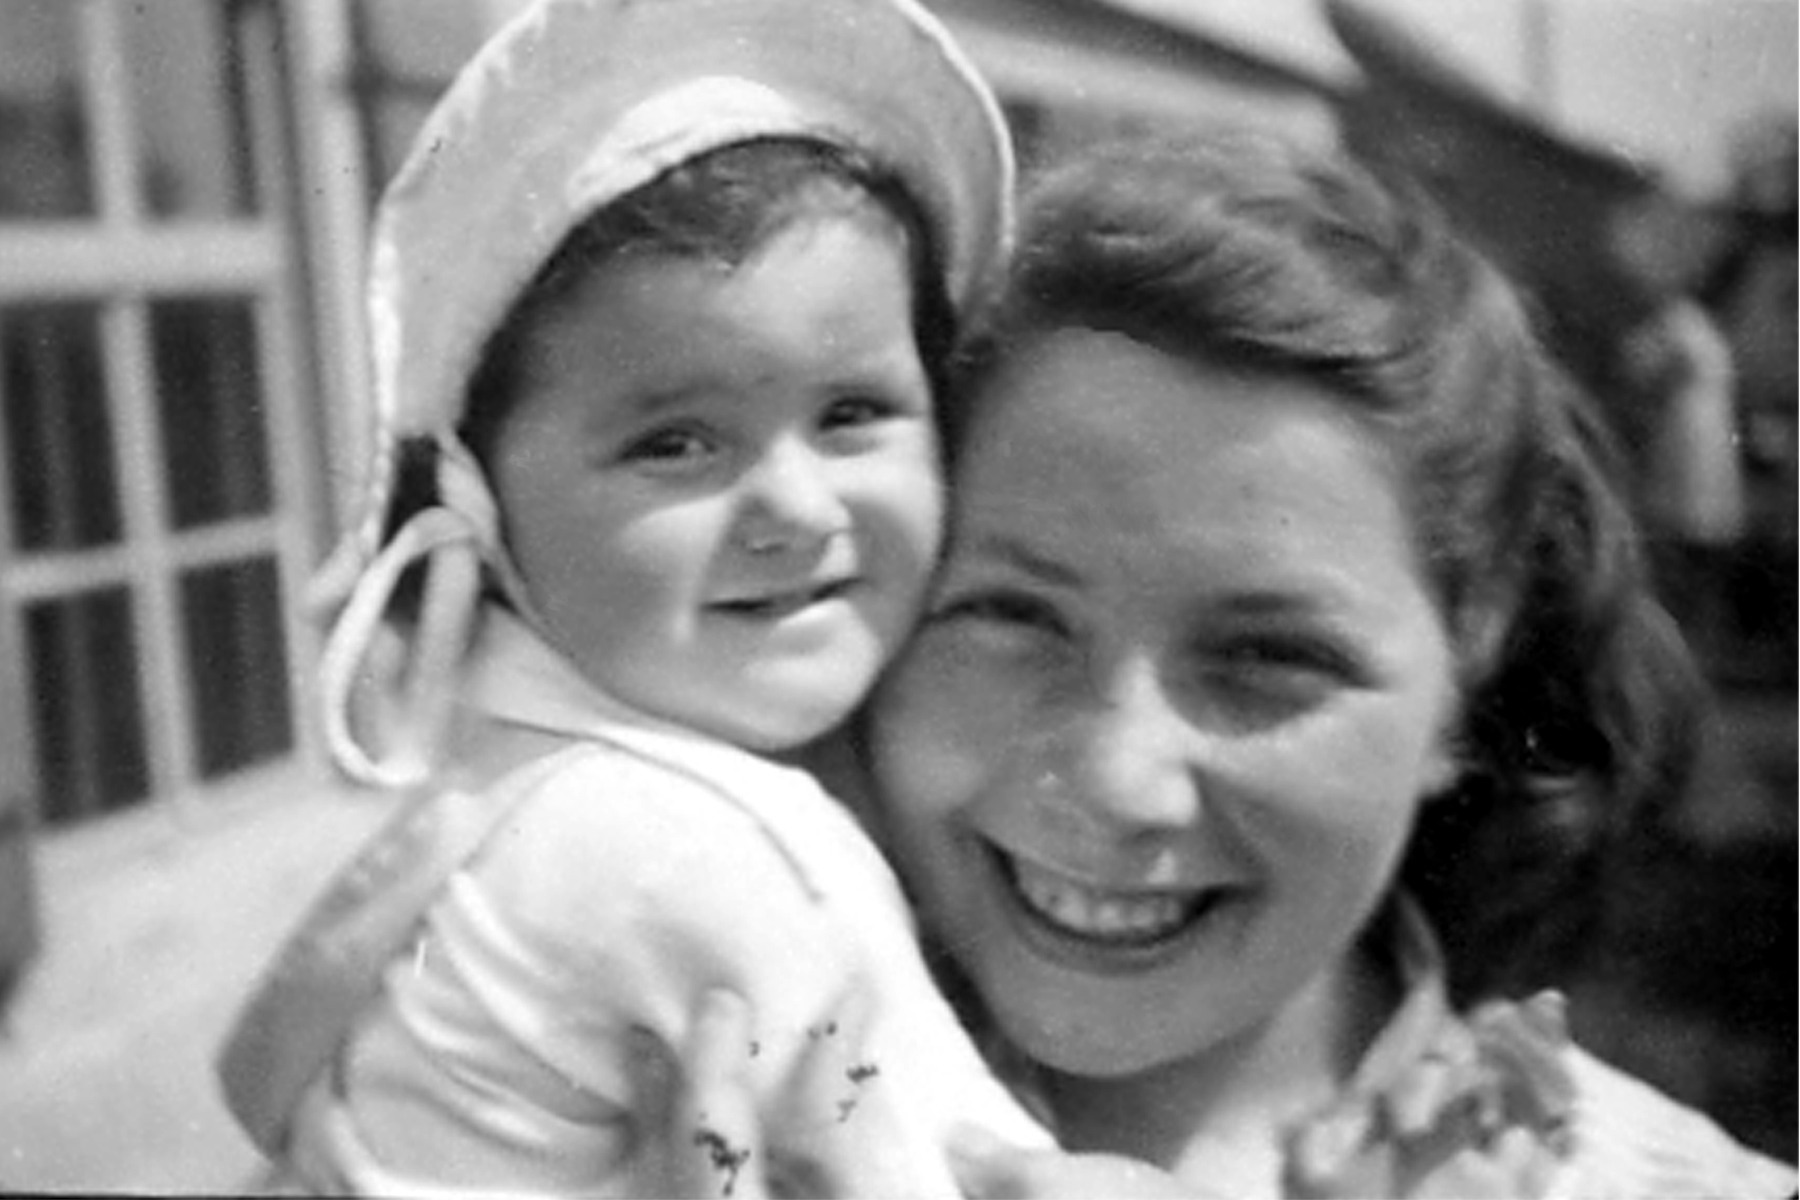 230. Edith et Monique, 1945